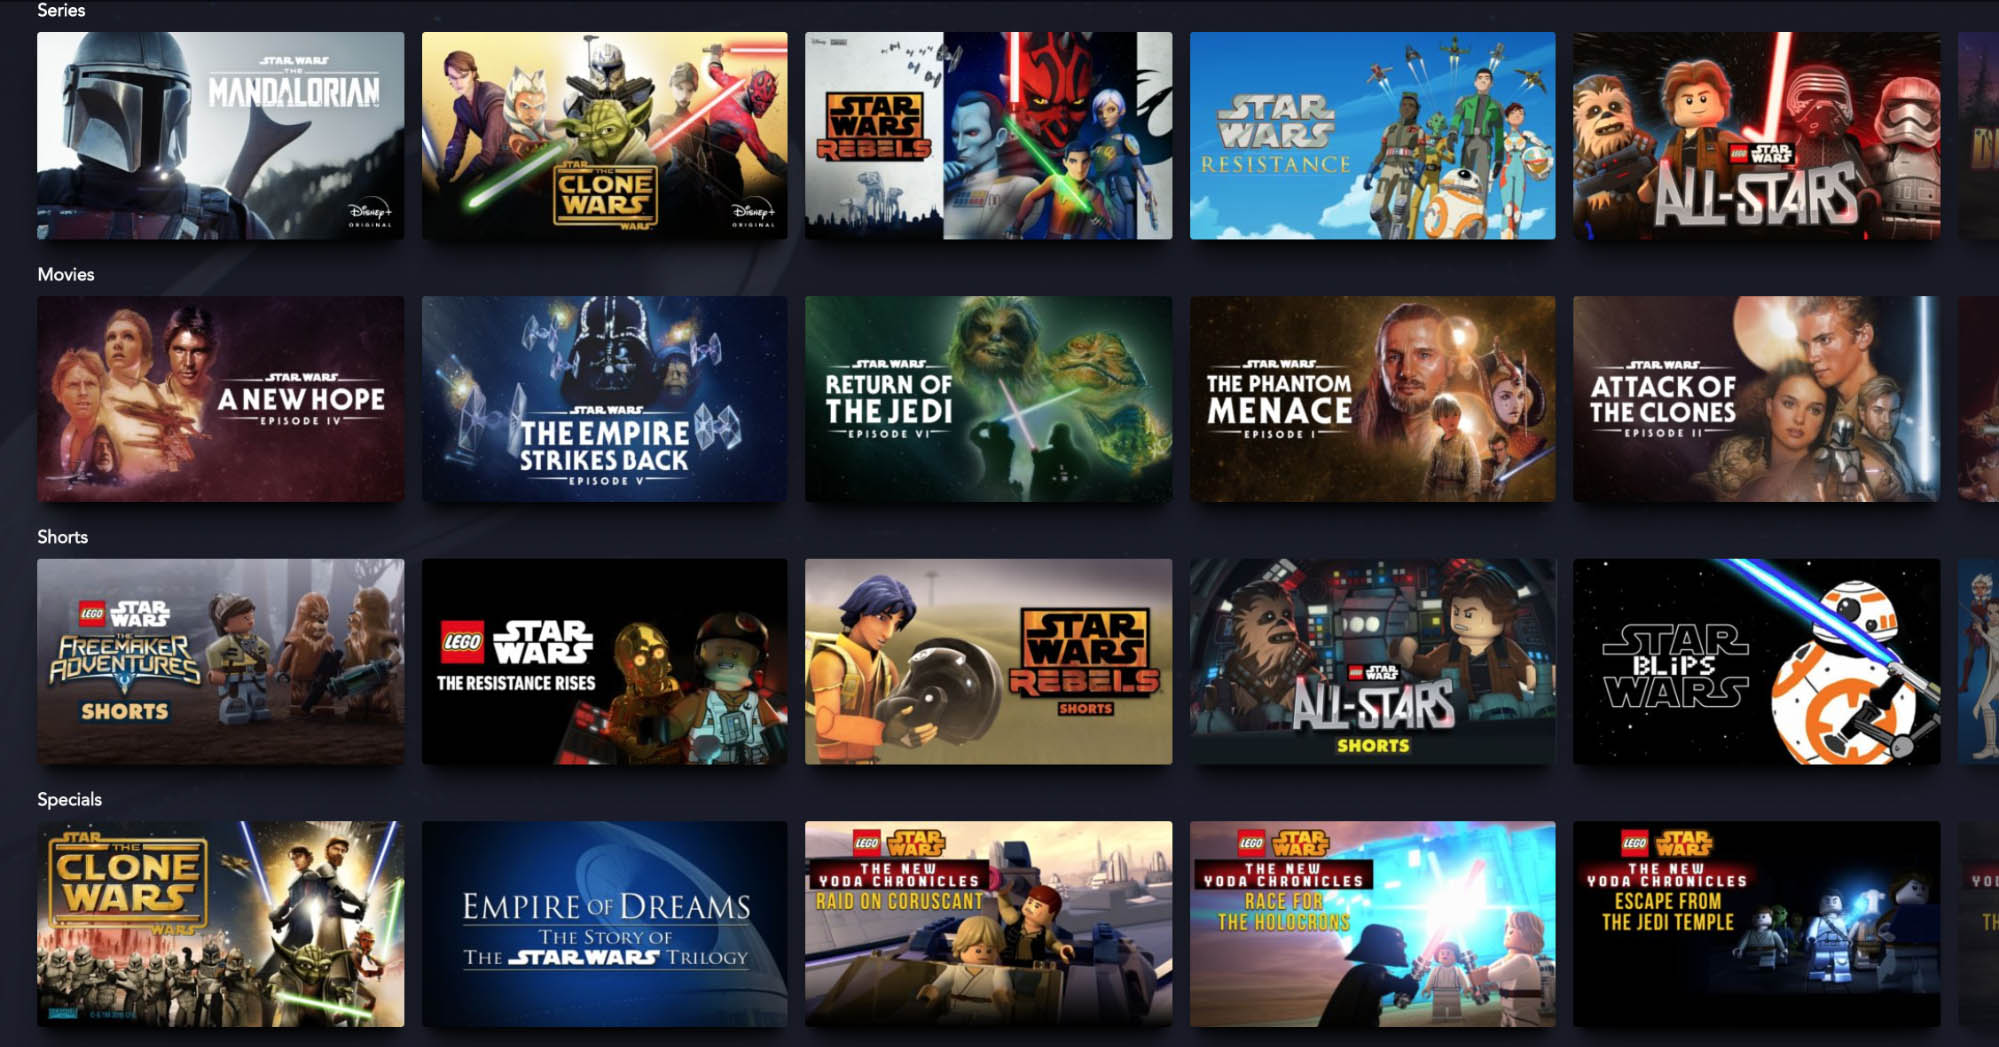 Trickut - disney plus free trial - Star Wars - Deals Product Reviews Coupons